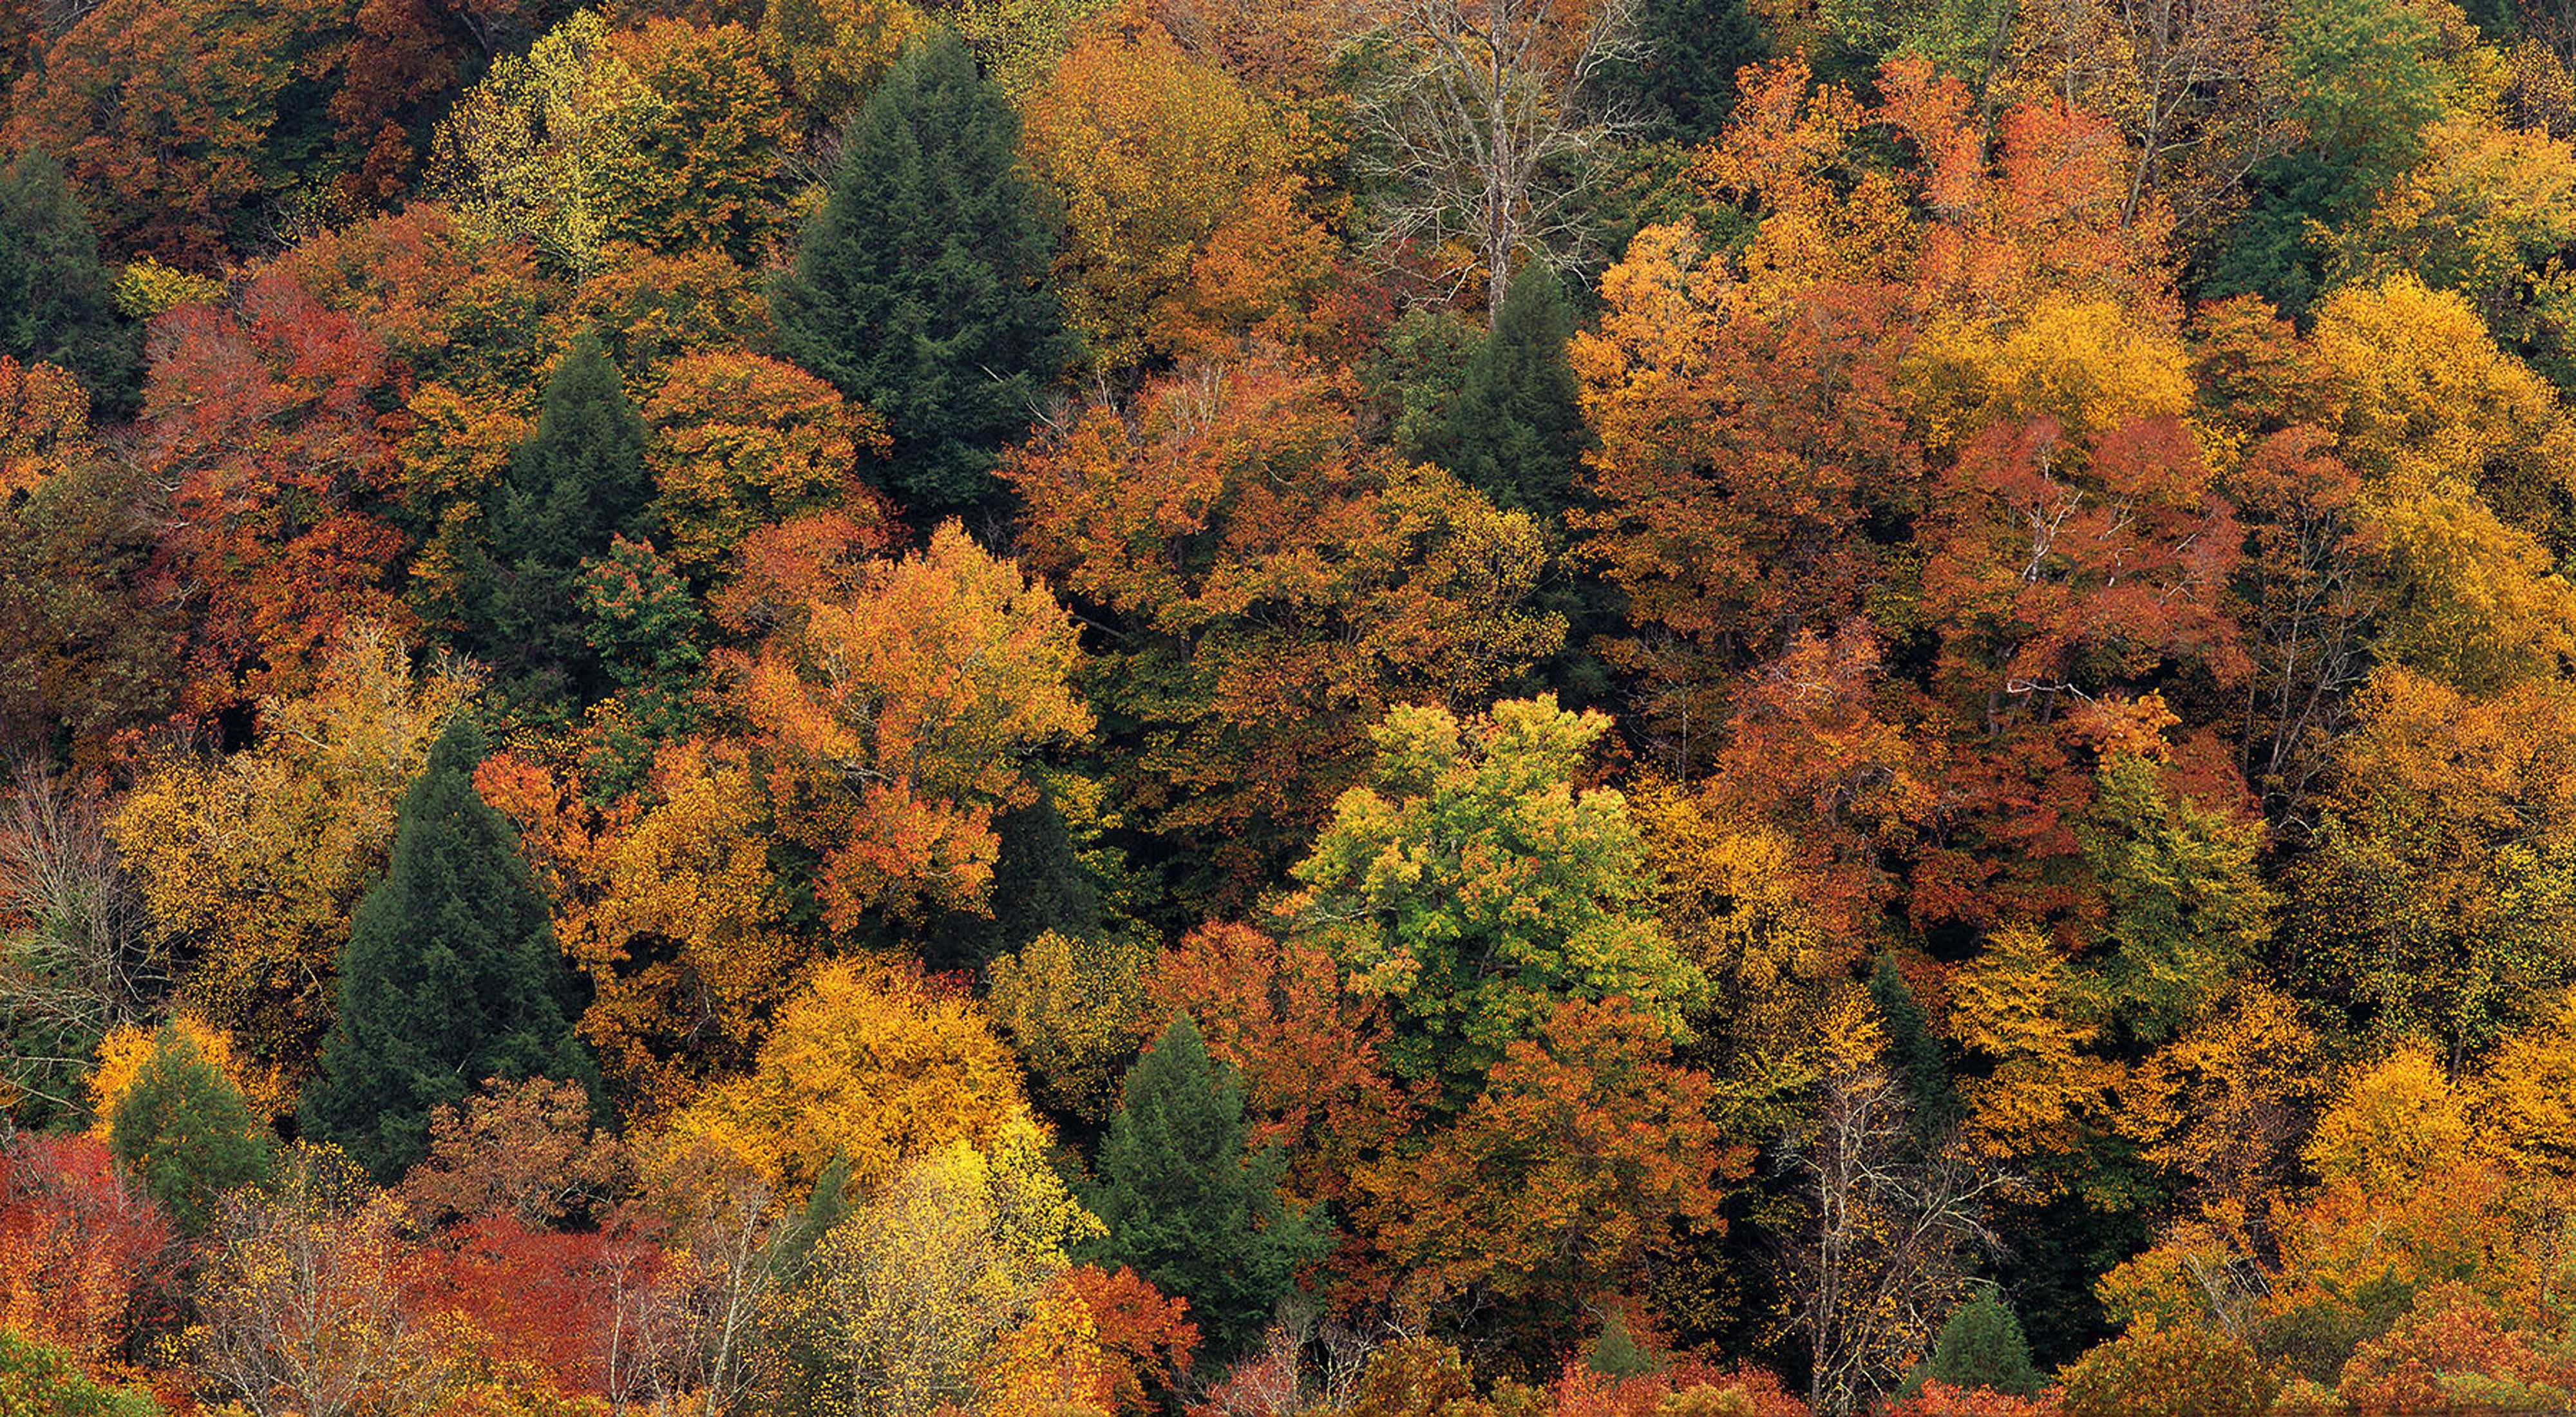 A forest in autumn with trees of various color